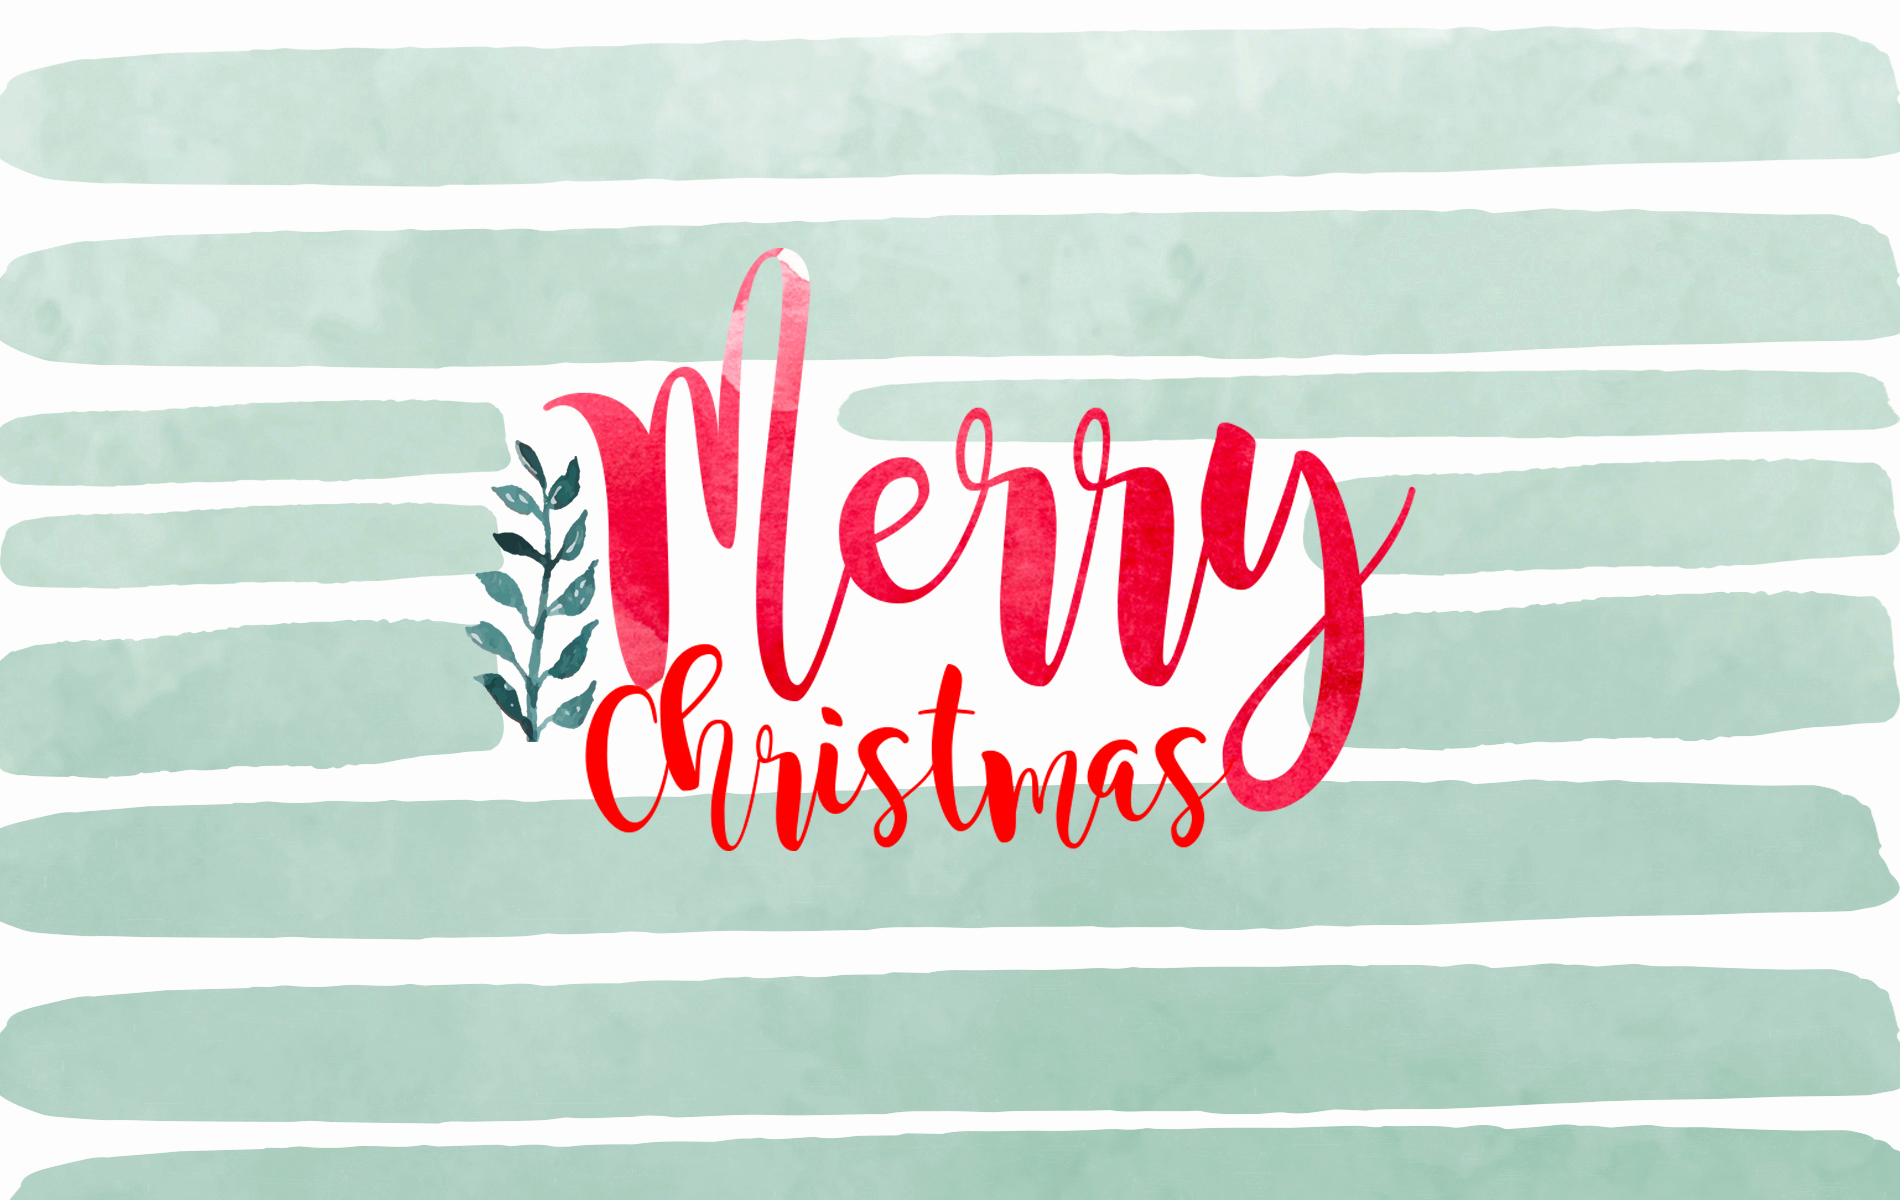 8 free christmas desktop and ipad wallpapers — life of ellie grace